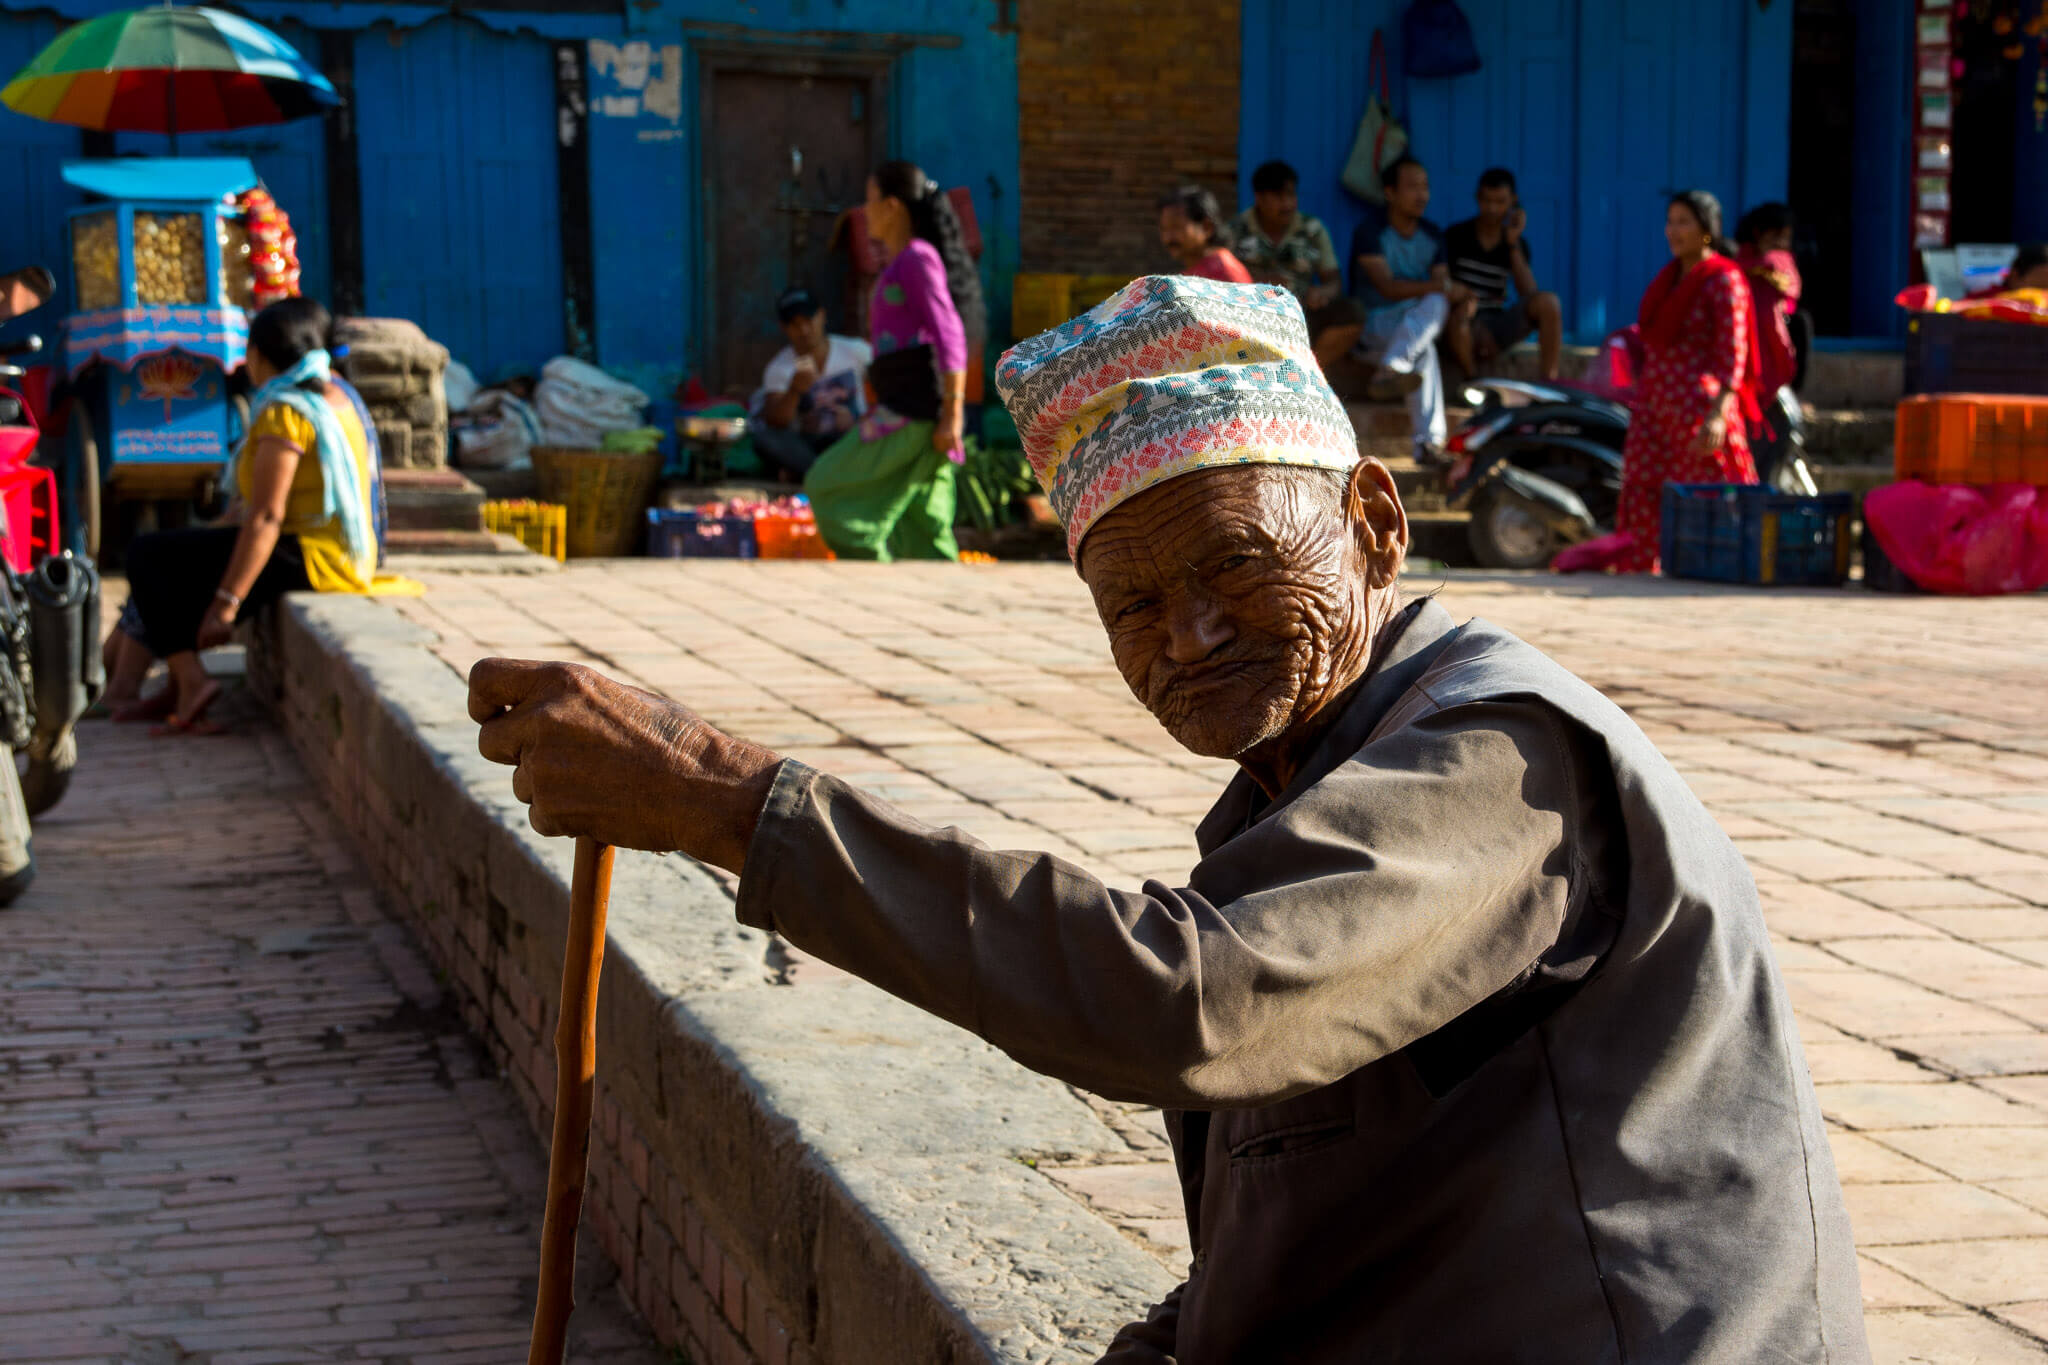 The old and wise men of Nepal